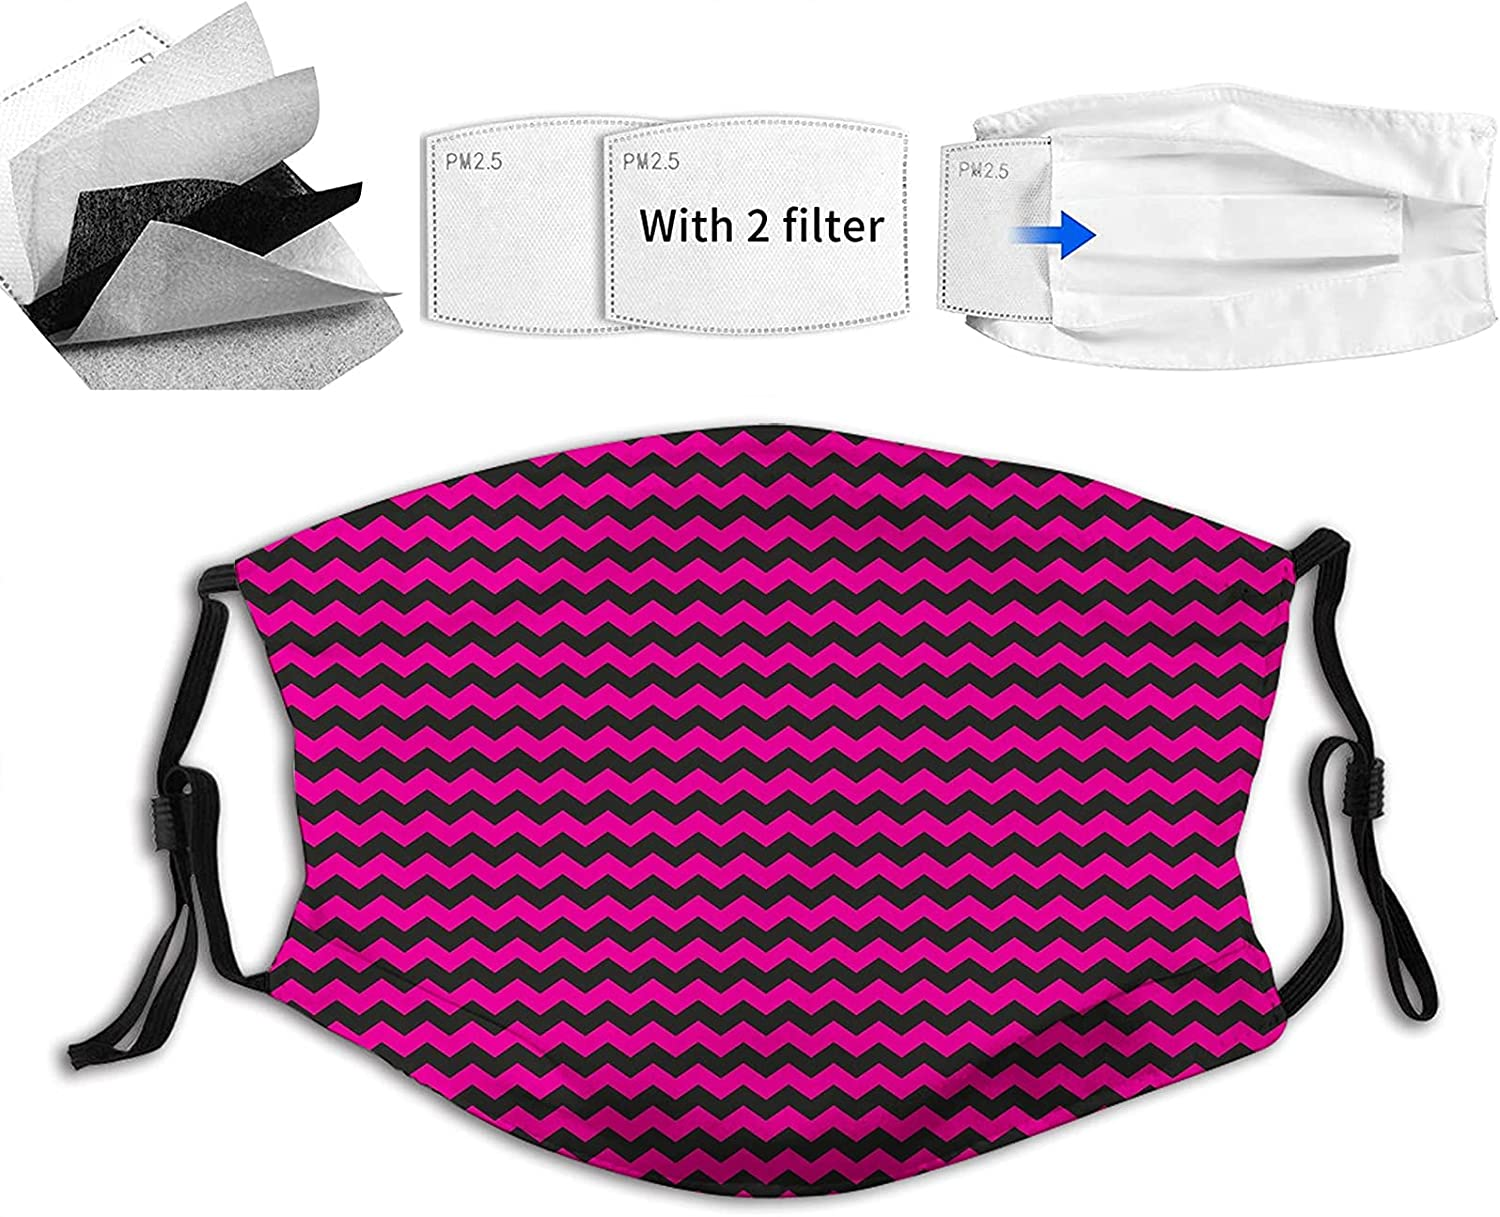 Comfortable Printed mask Zigzag Chevron with Max 73% OFF Curved Stri Pattern Jacksonville Mall